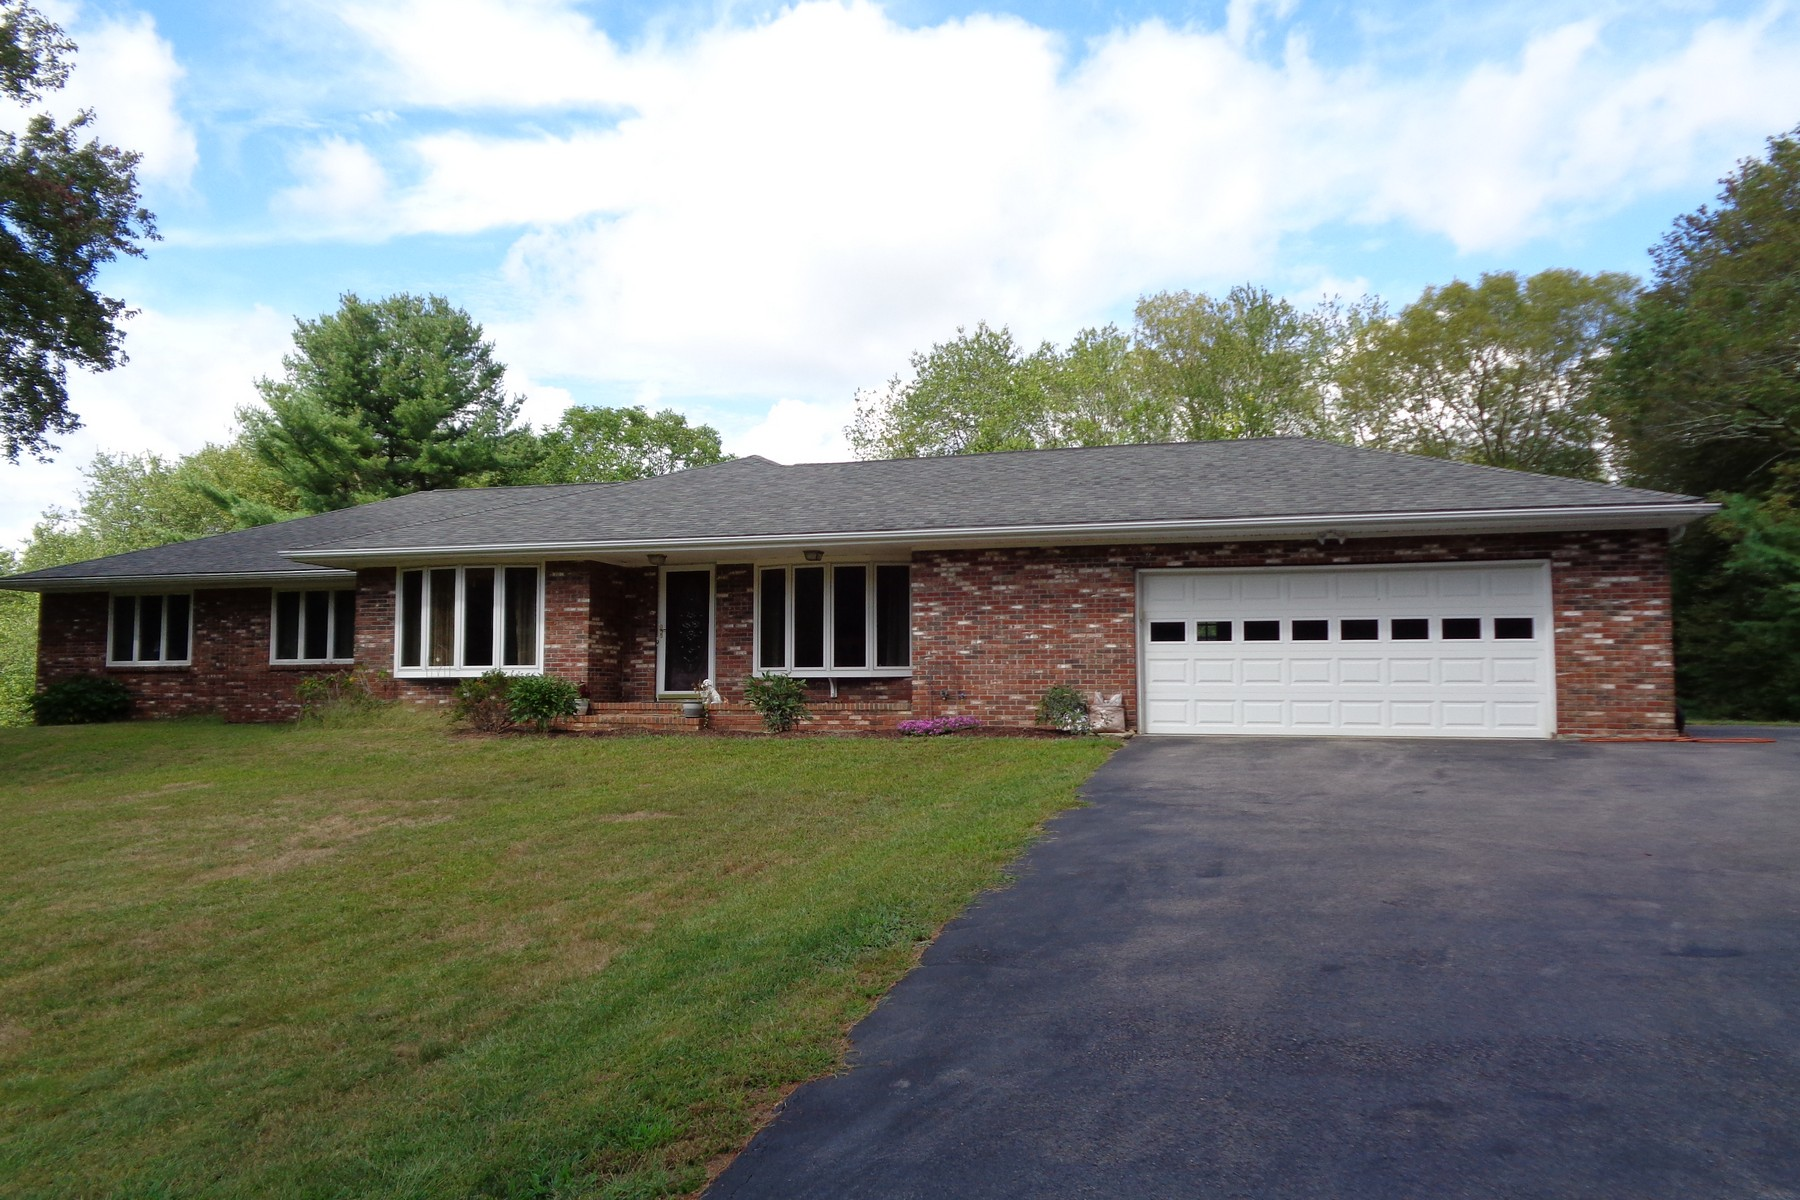 Single Family Home for Sale at Spacious Ranch 377 Providence New London Turnpike North Stonington, Connecticut 06359 United States